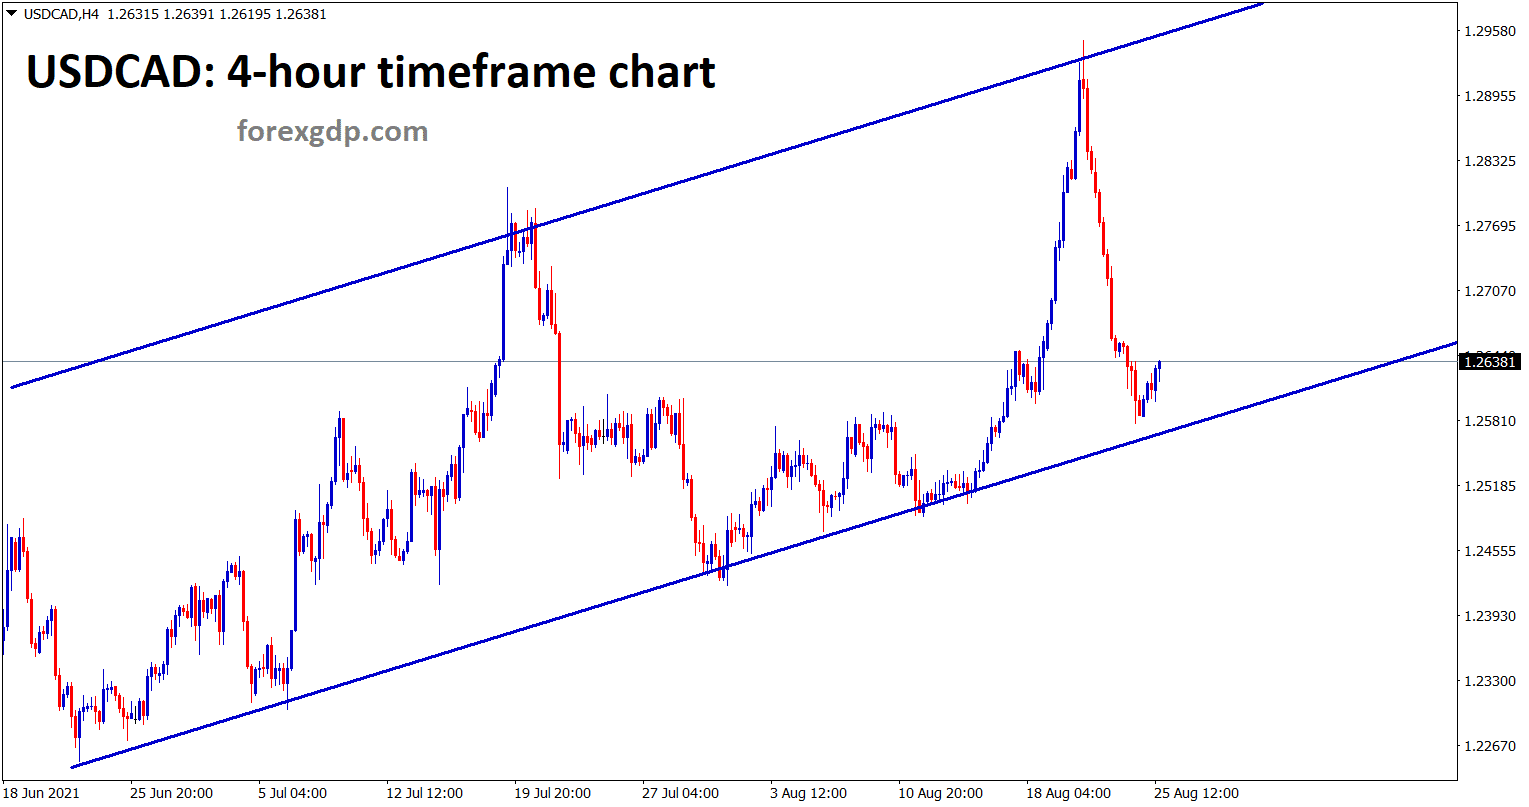 USDCAD is near to the higher low of an Uptrend line in the h4 chart